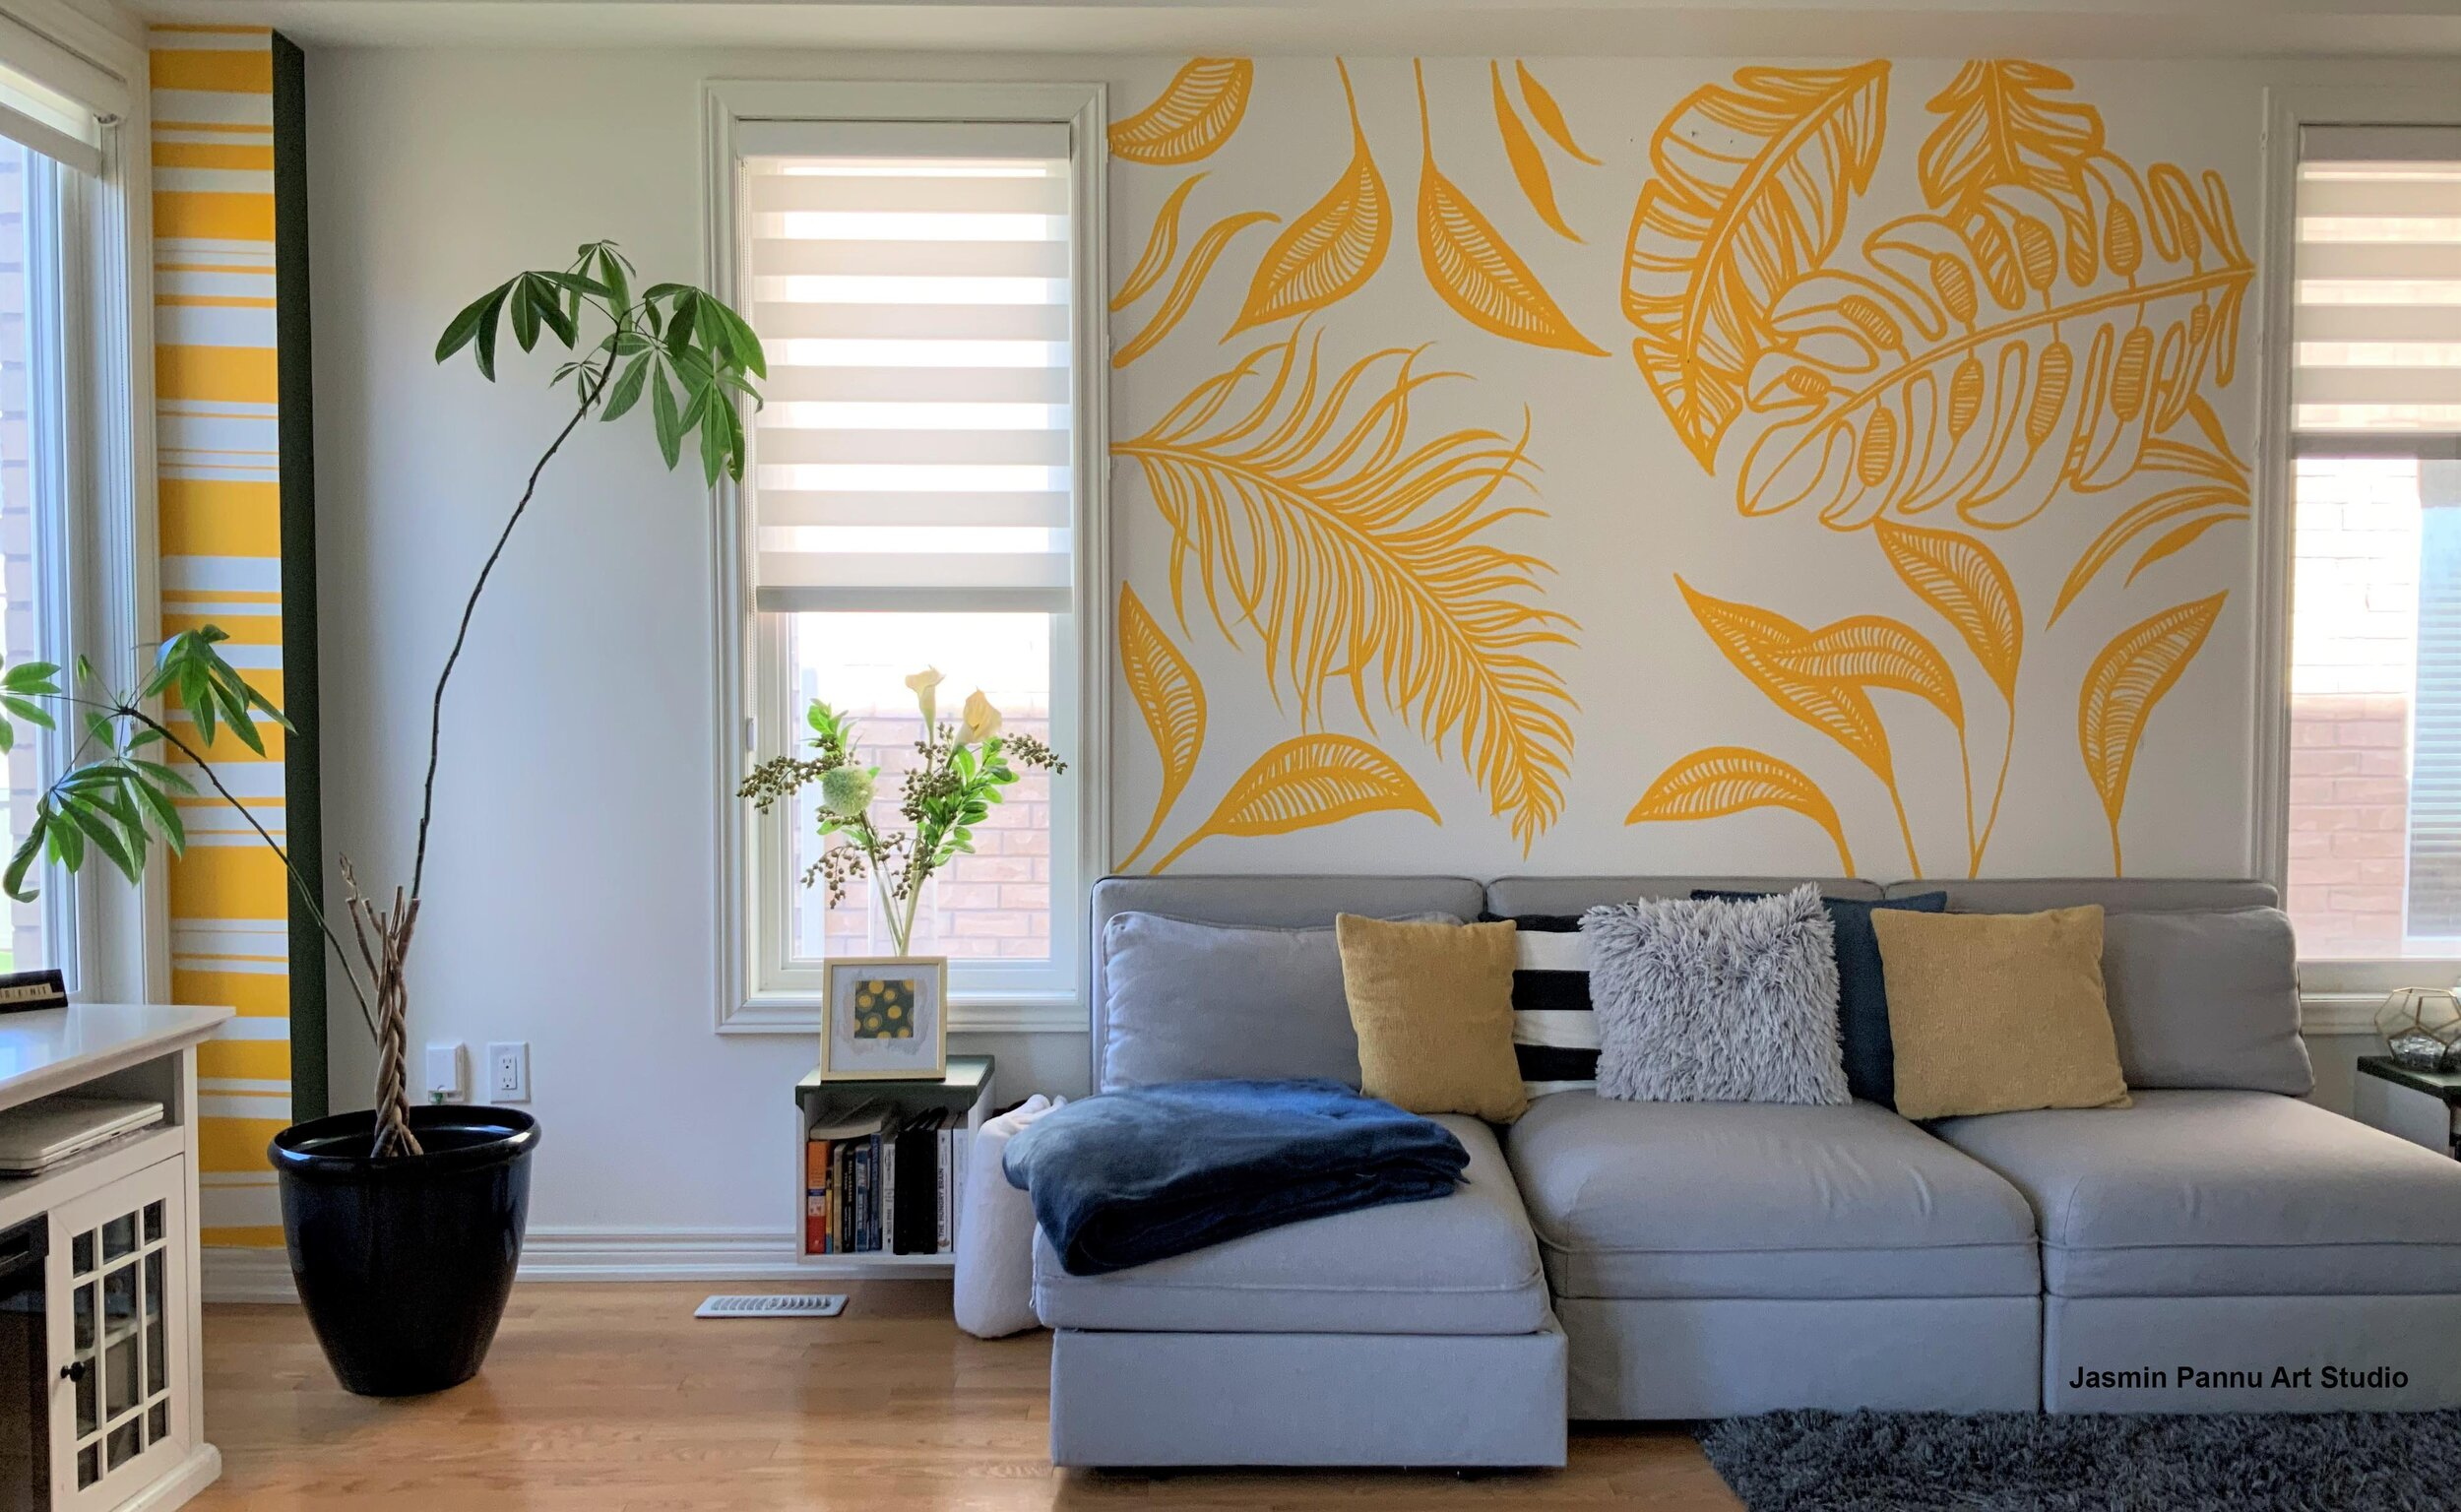 Diy Mural Tips With Wall Painting Templates Jasmin Pannu Art Studio See more ideas about tropical art, watercolor paintings, tropical painting. diy mural tips with wall painting